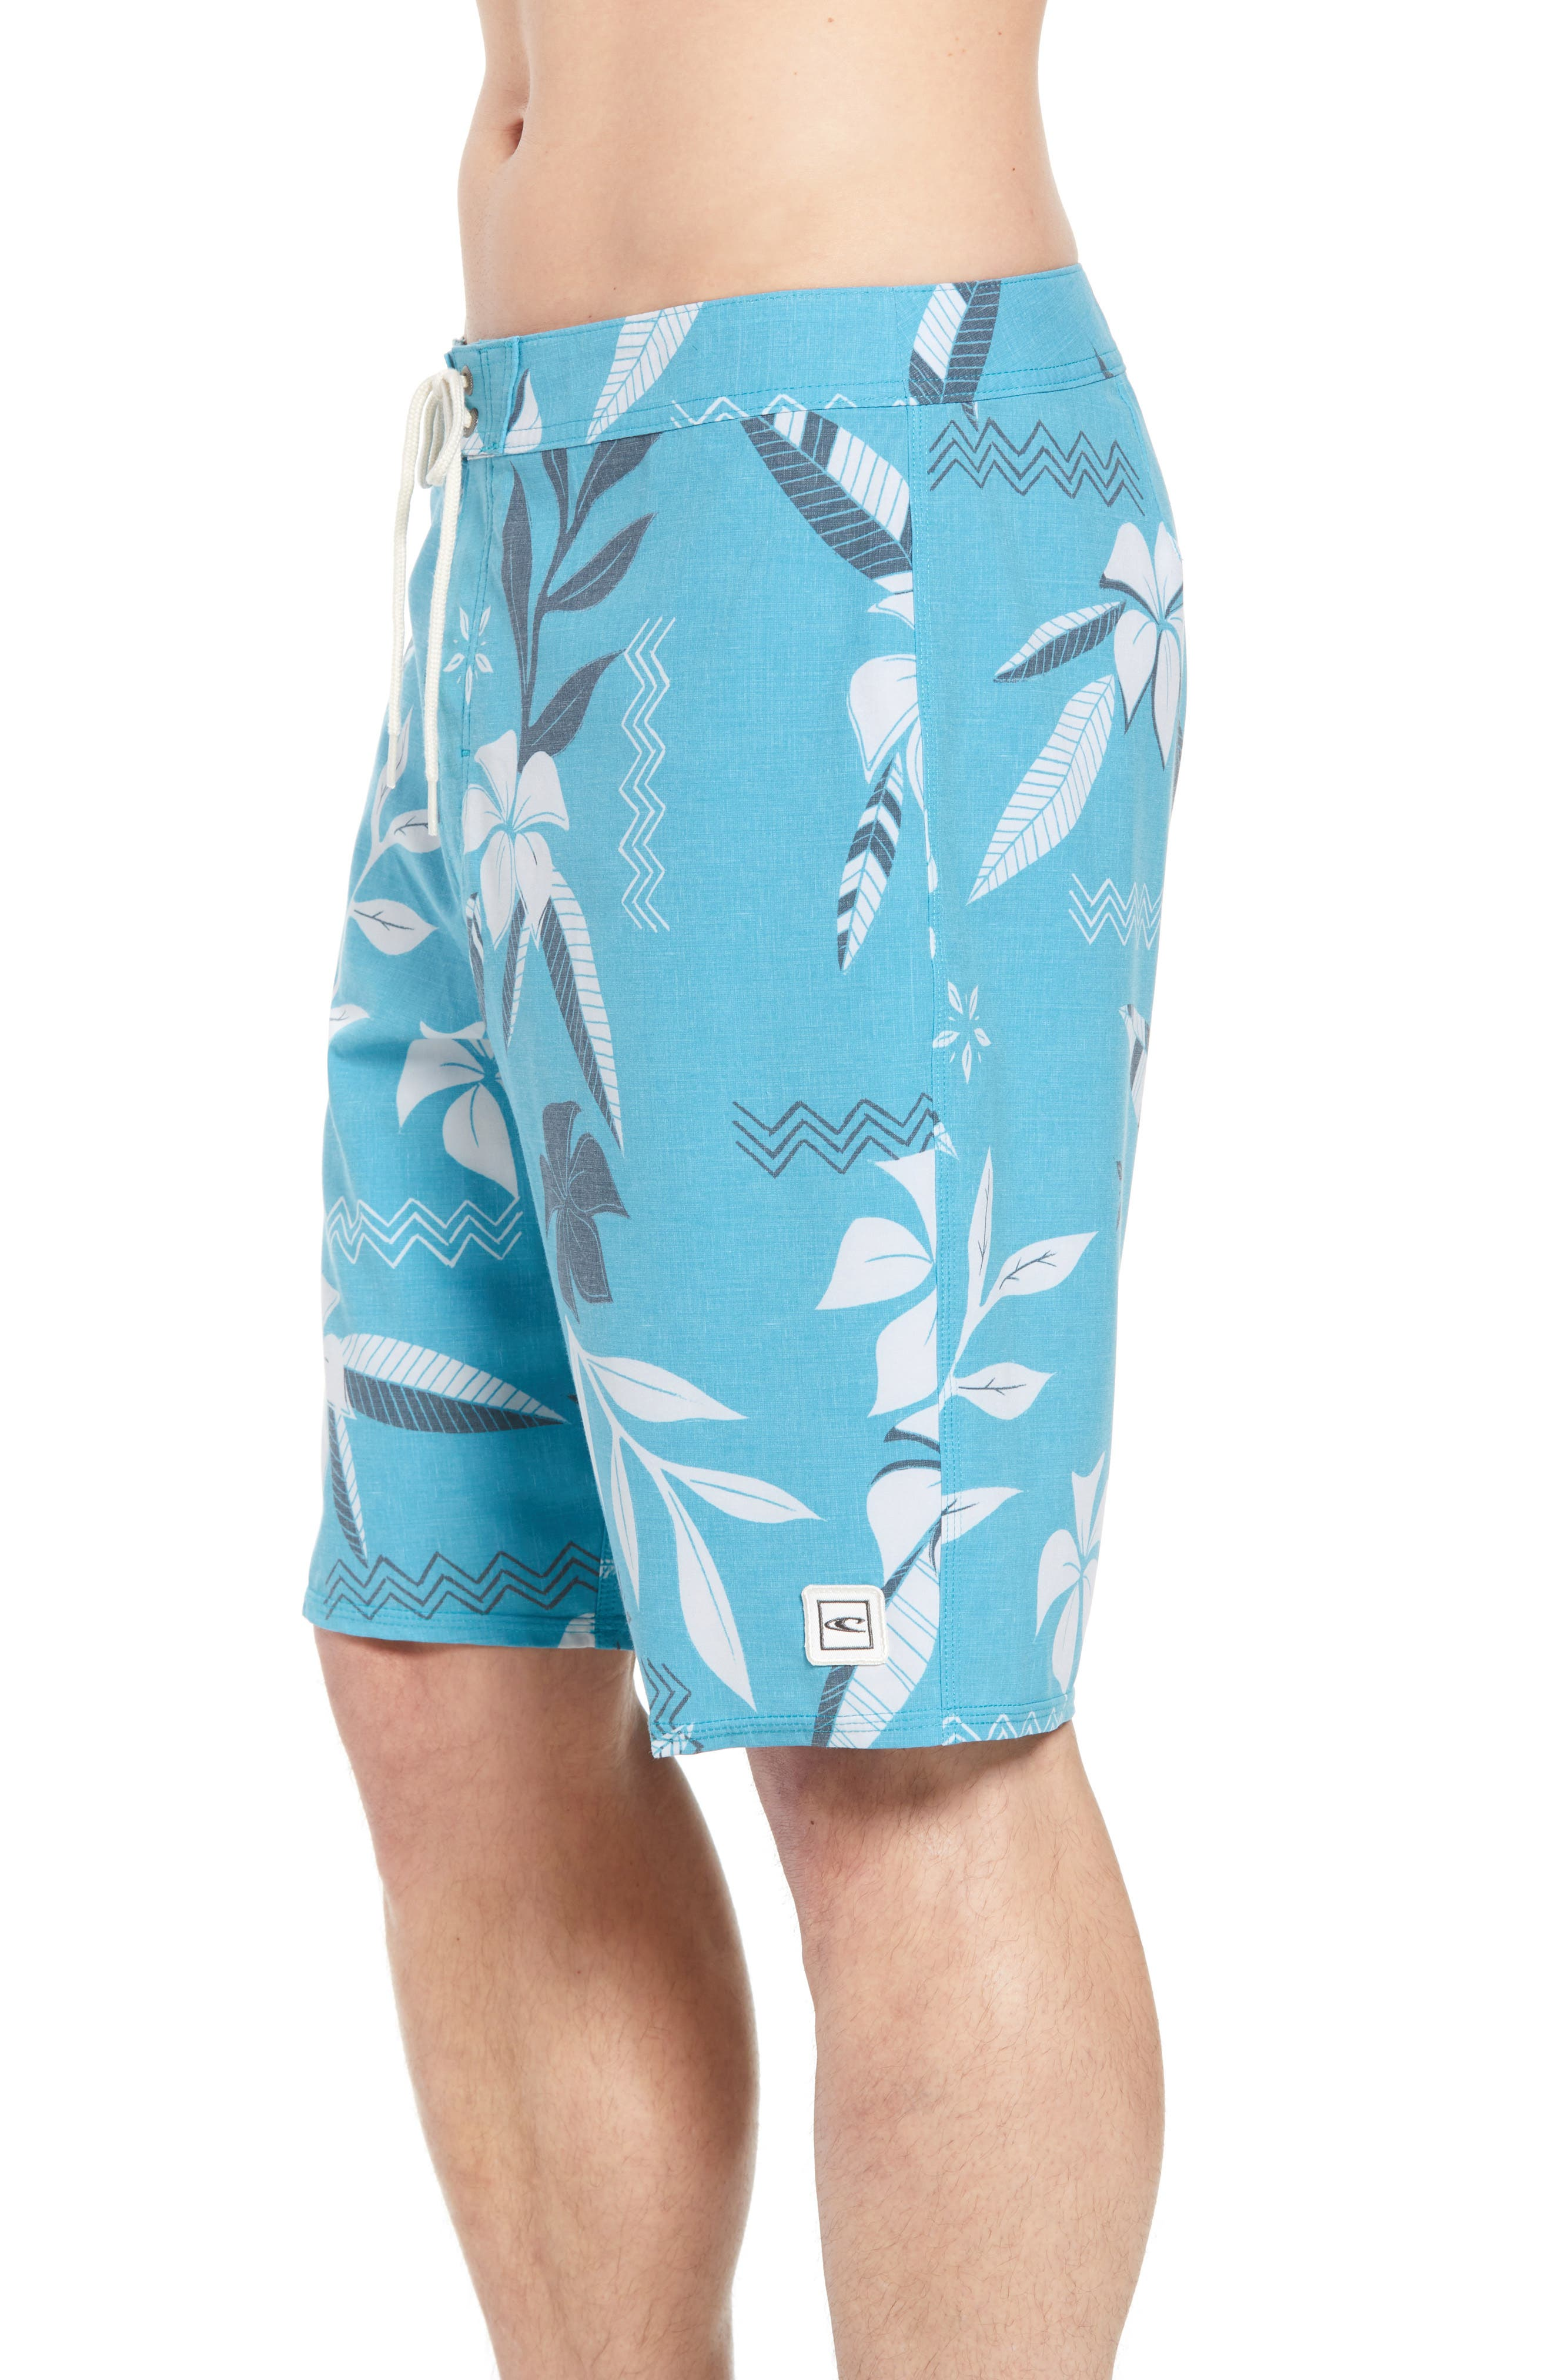 Maui Board Shorts,                             Alternate thumbnail 11, color,